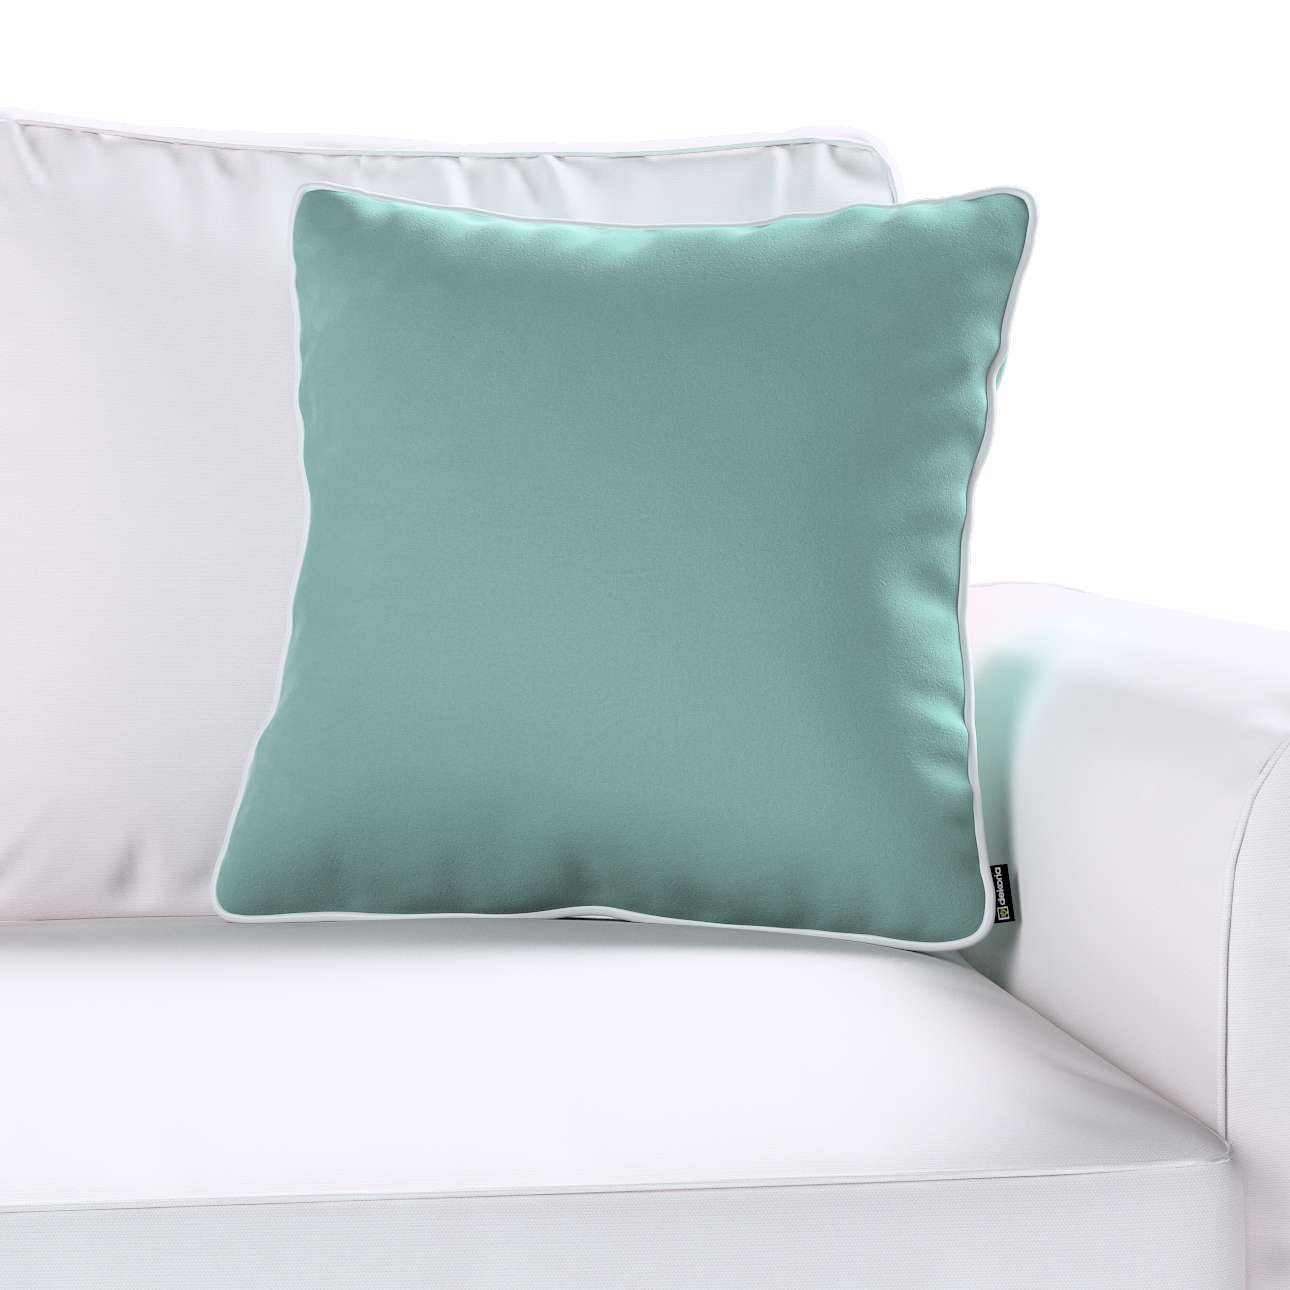 Laura square velvet cushion cover with piping in collection Velvet, fabric: 704-18